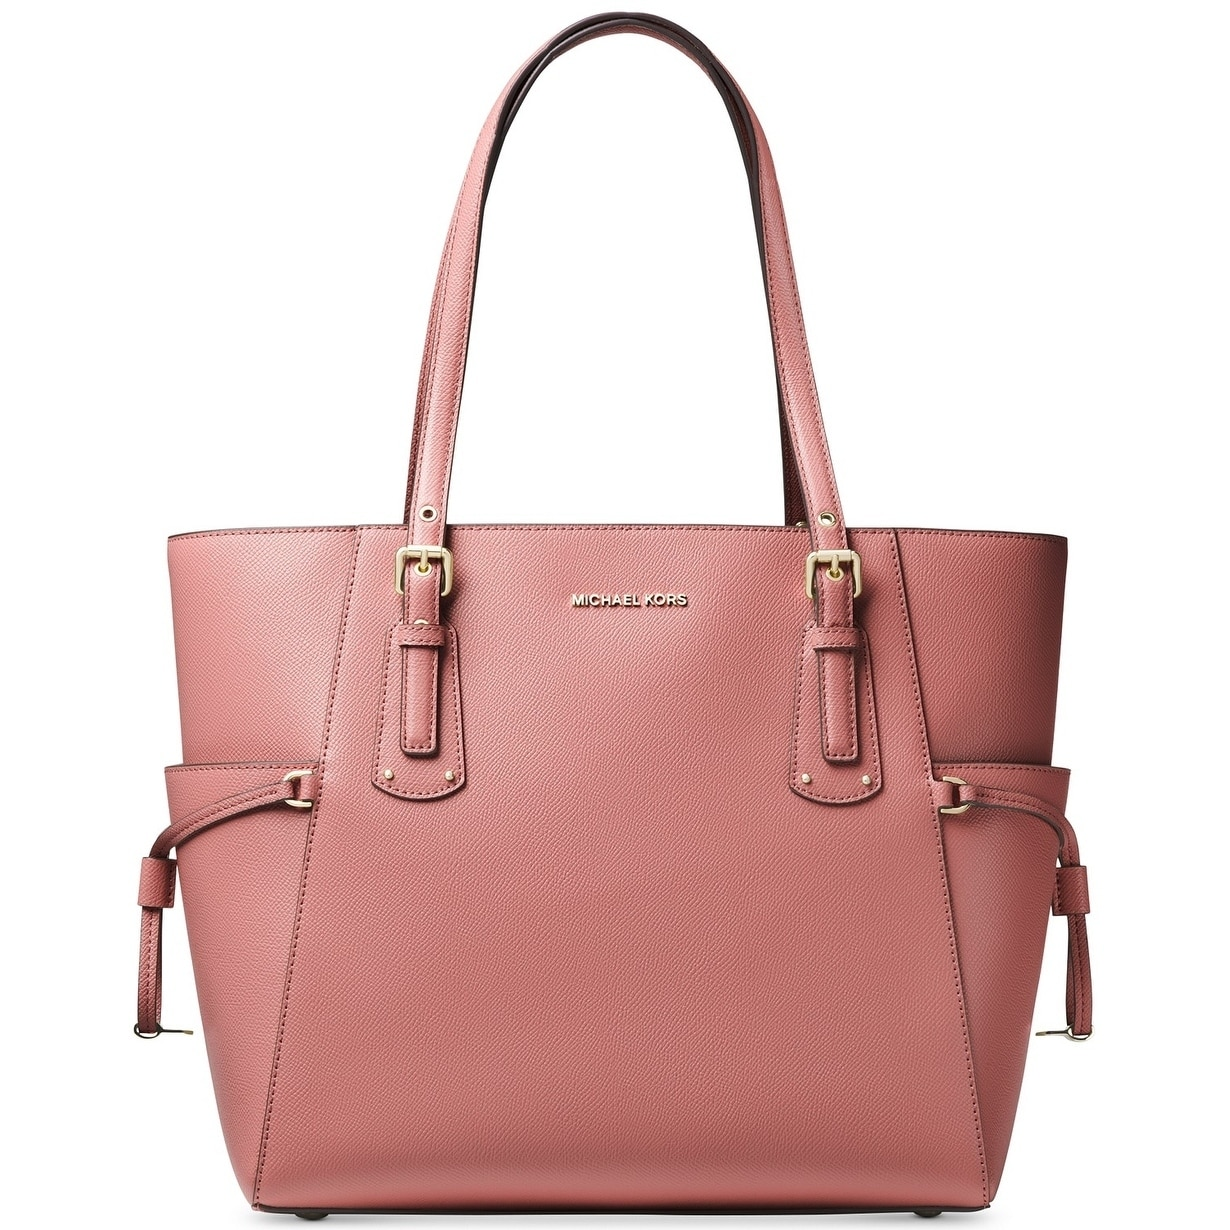 faf89d3b19e8 Buy Michael Kors Tote Bags Online at Overstock | Our Best Shop By Style  Deals